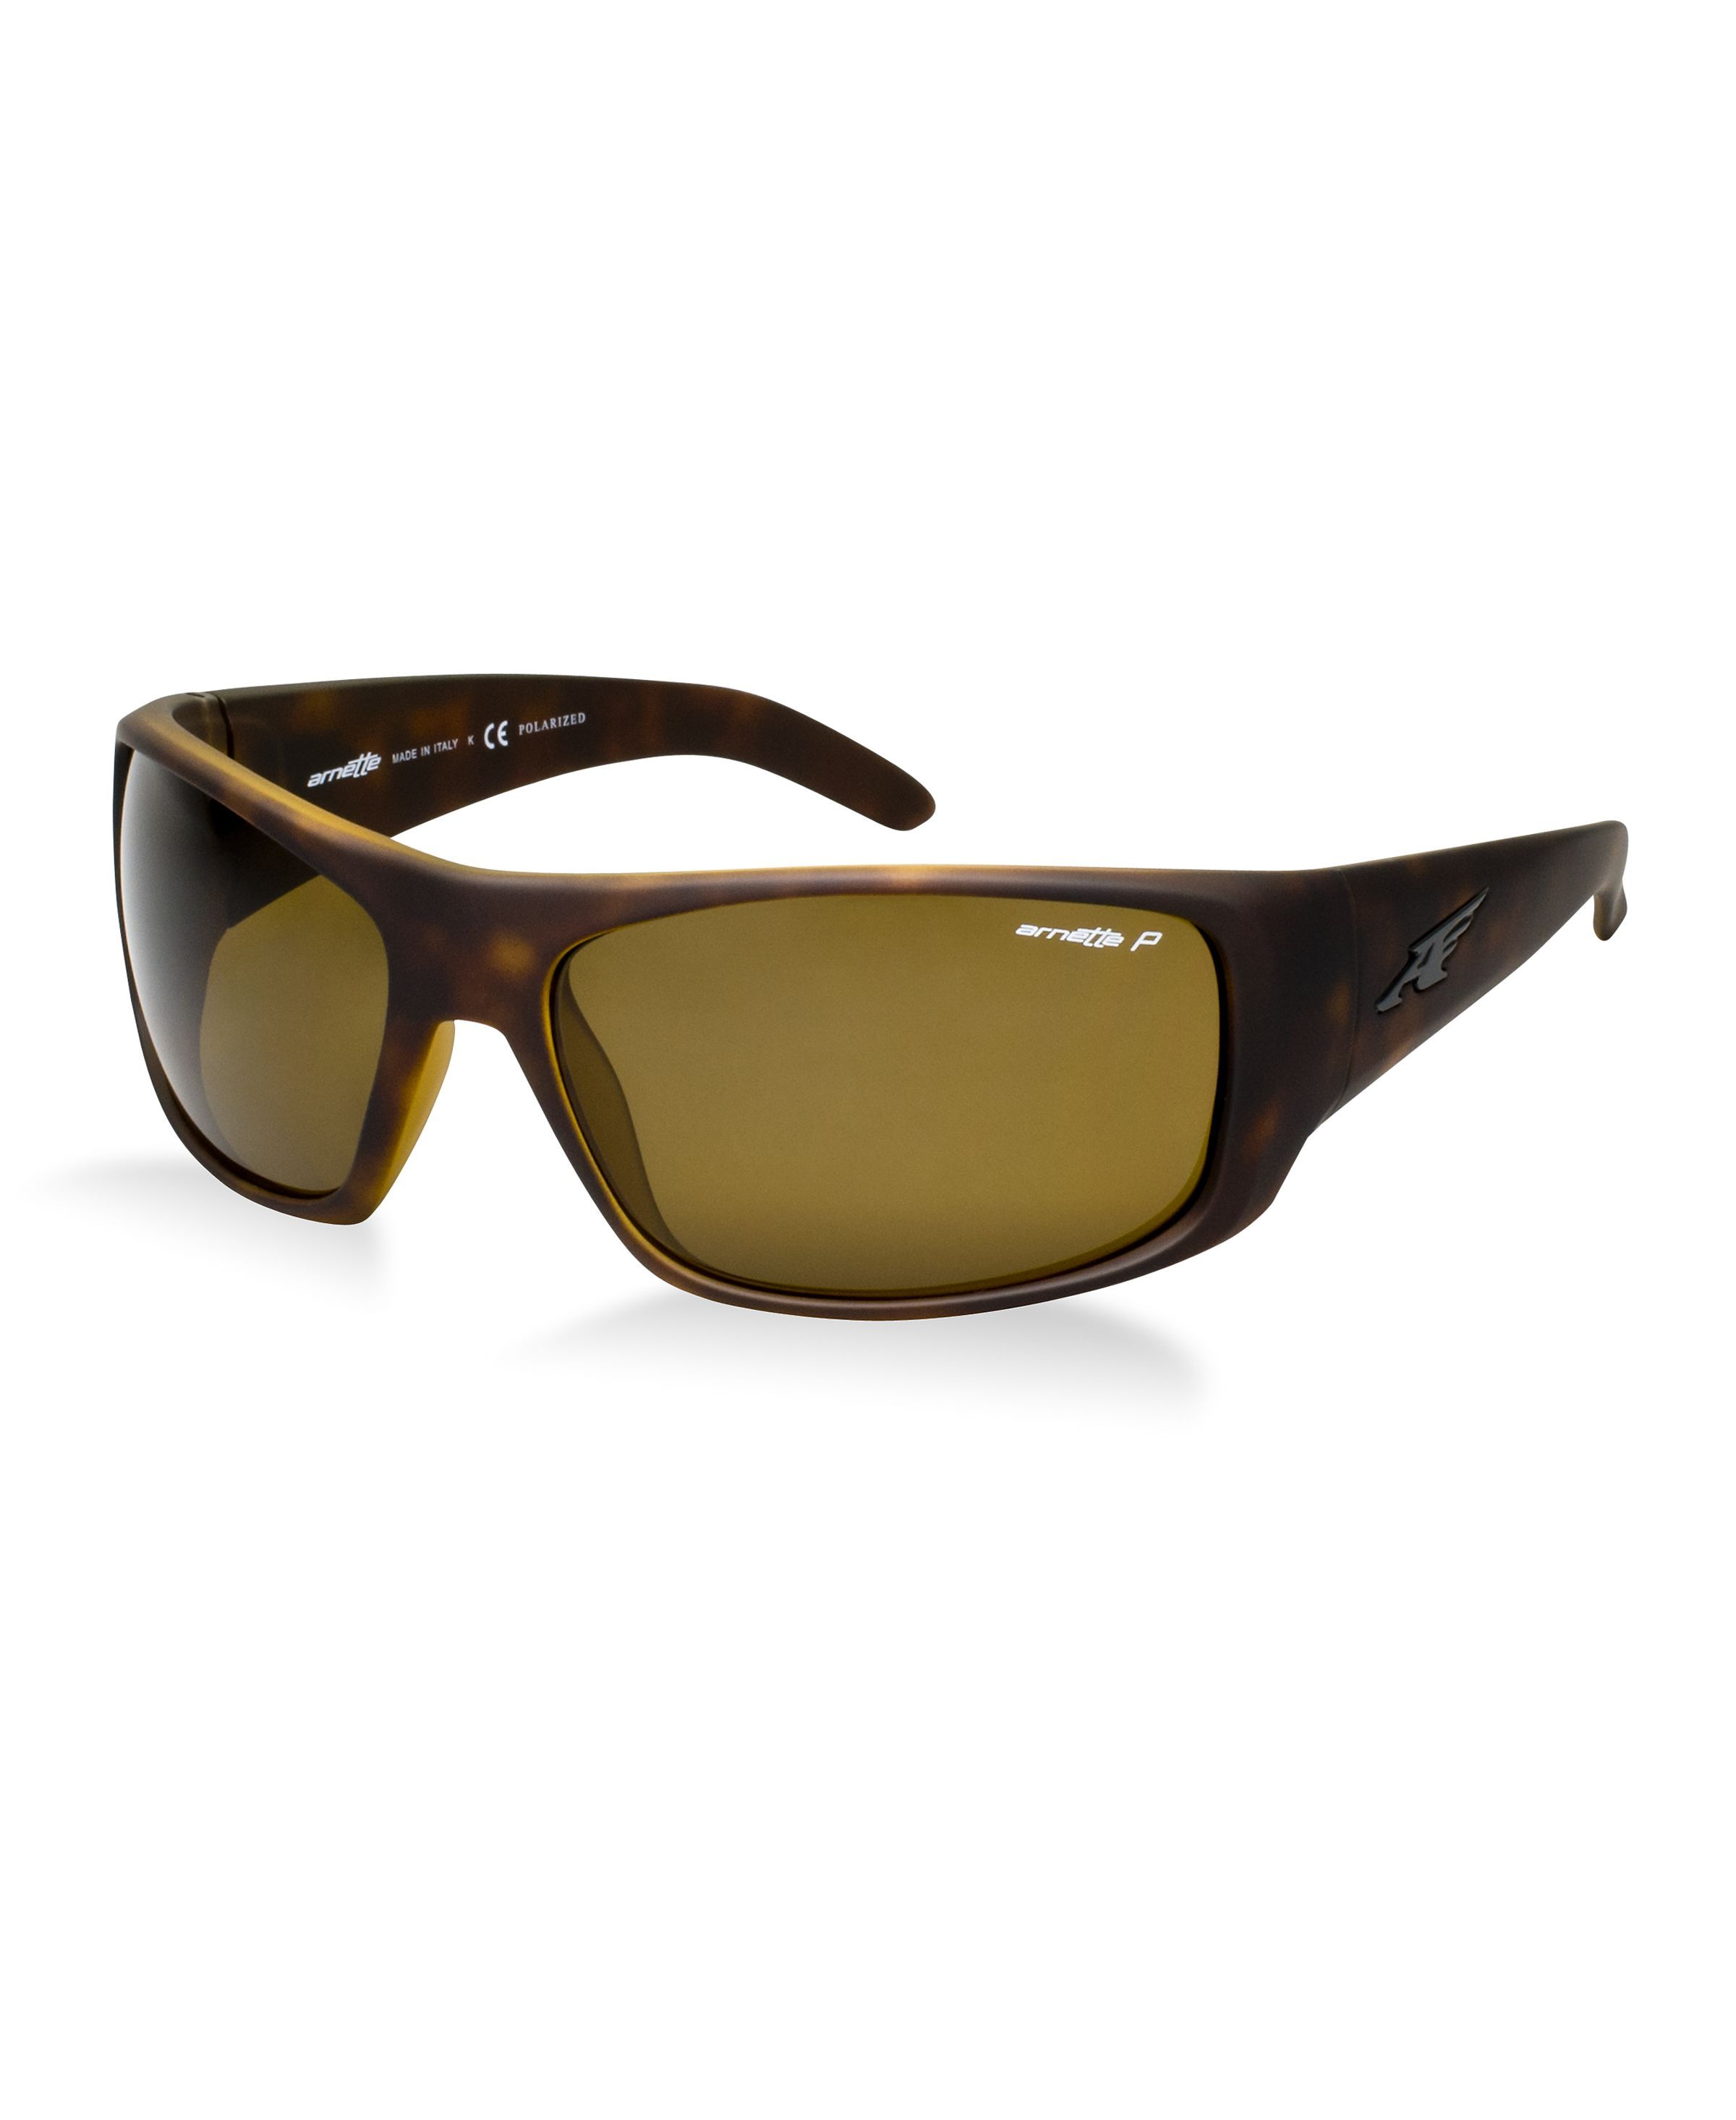 Arnette Polarized Sunglasses, AN4179 La Pistola - Sunglasses by Sunglass  Hut - Men - Macy's